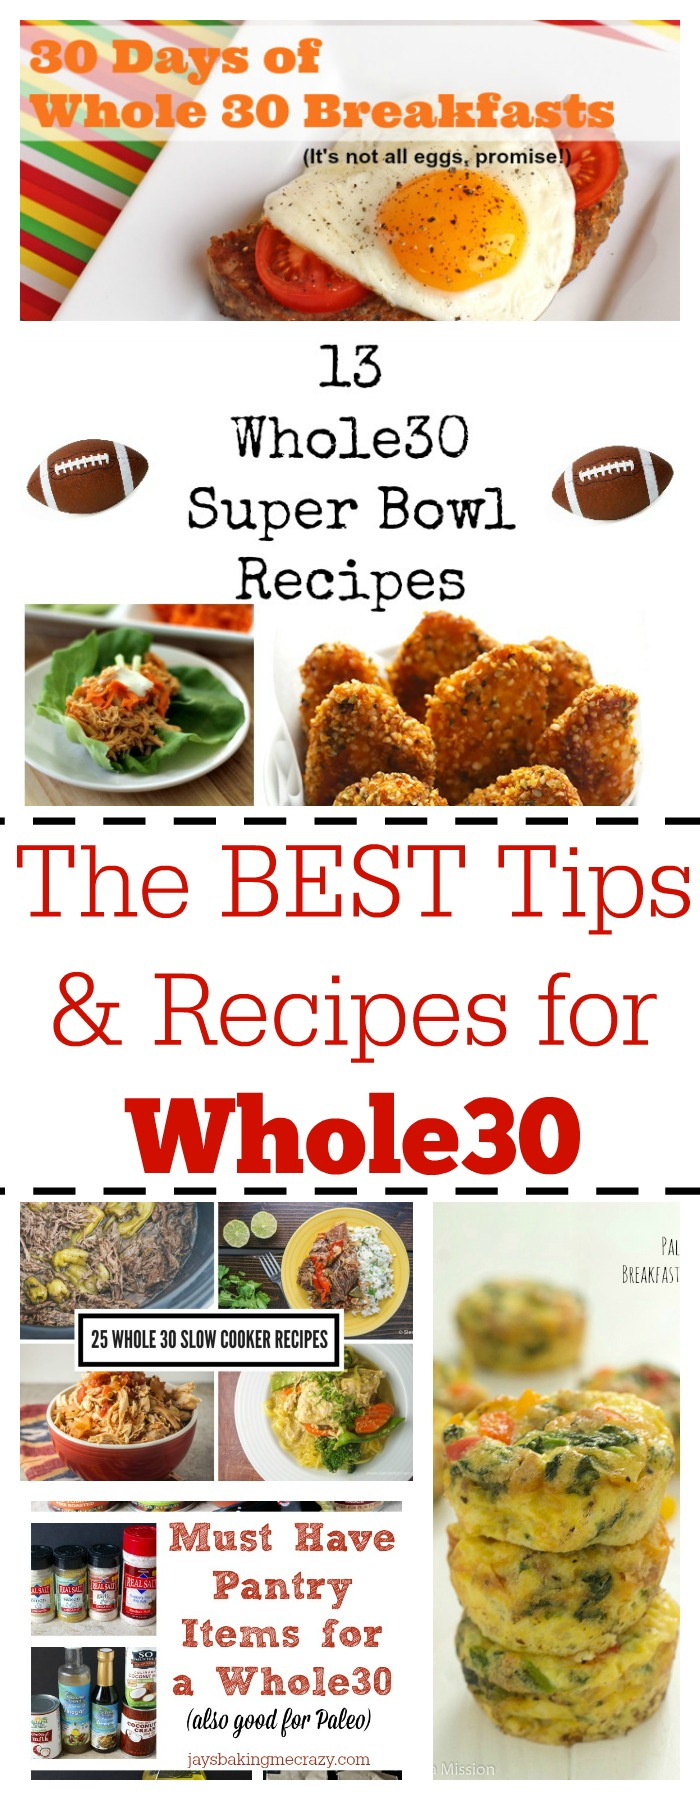 Tips, Tricks and Recipes for an easy Whole30 Month